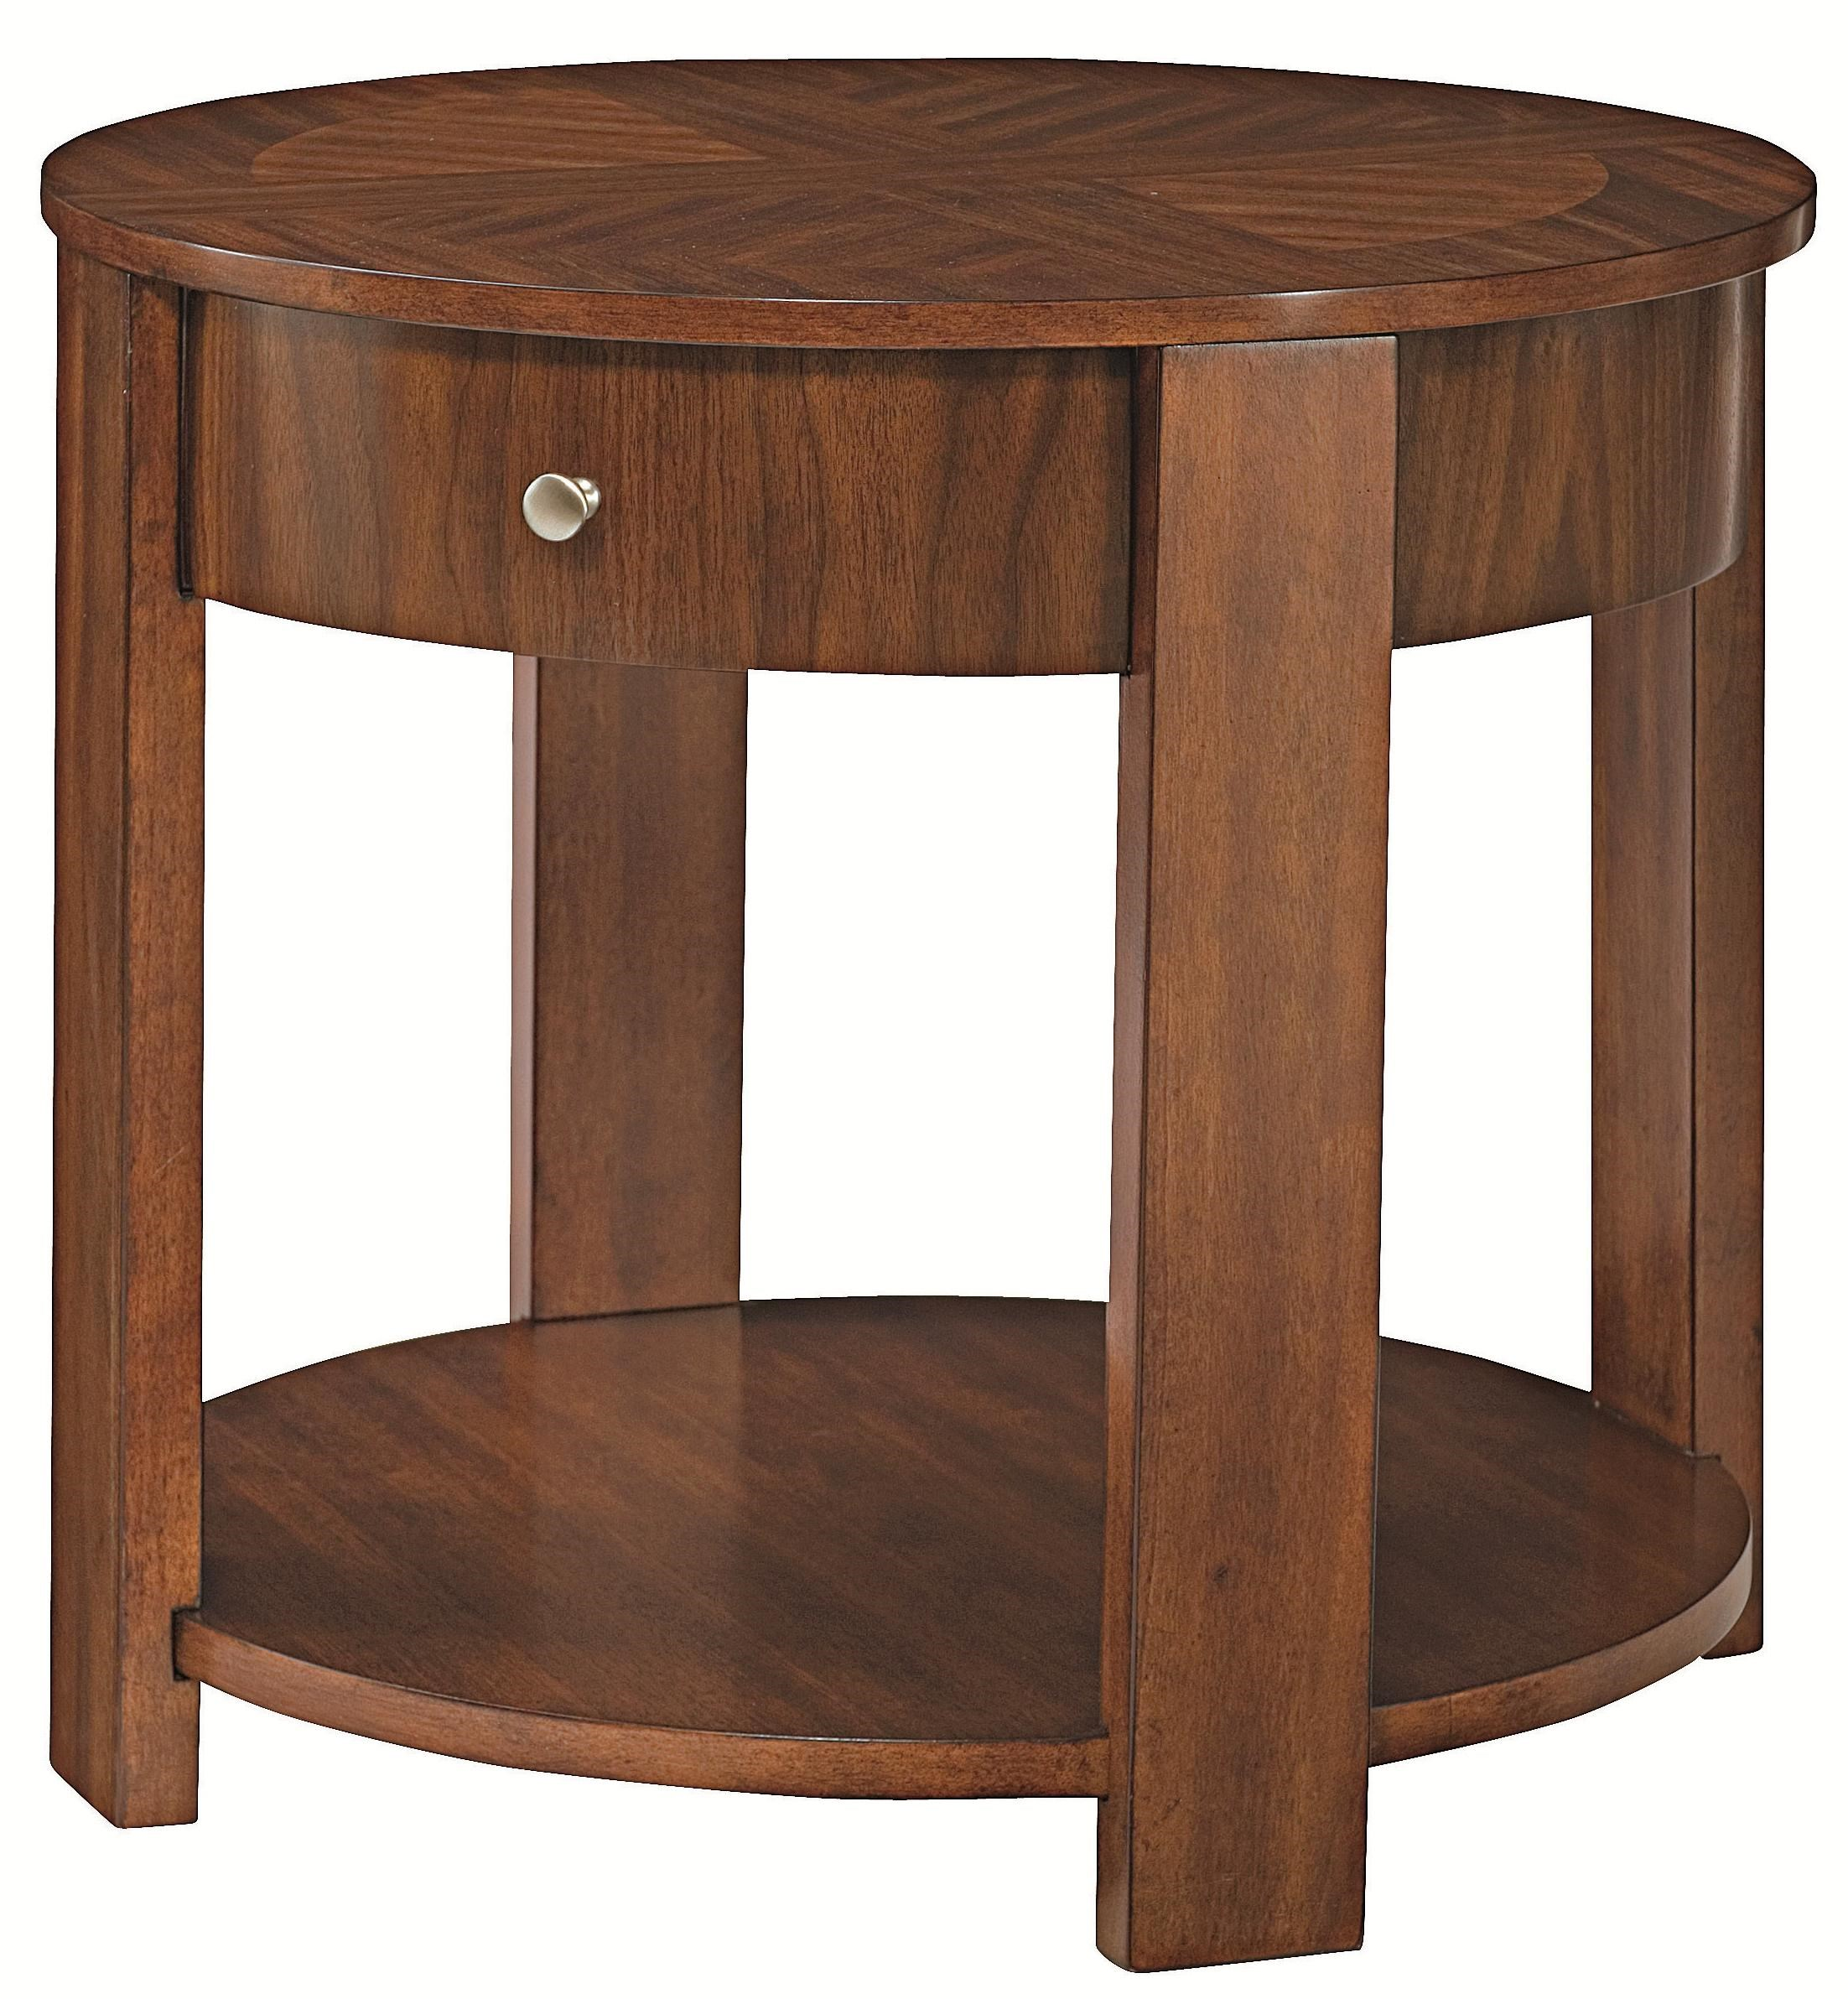 Round End Table With Storage Maxim Round Wood End Table